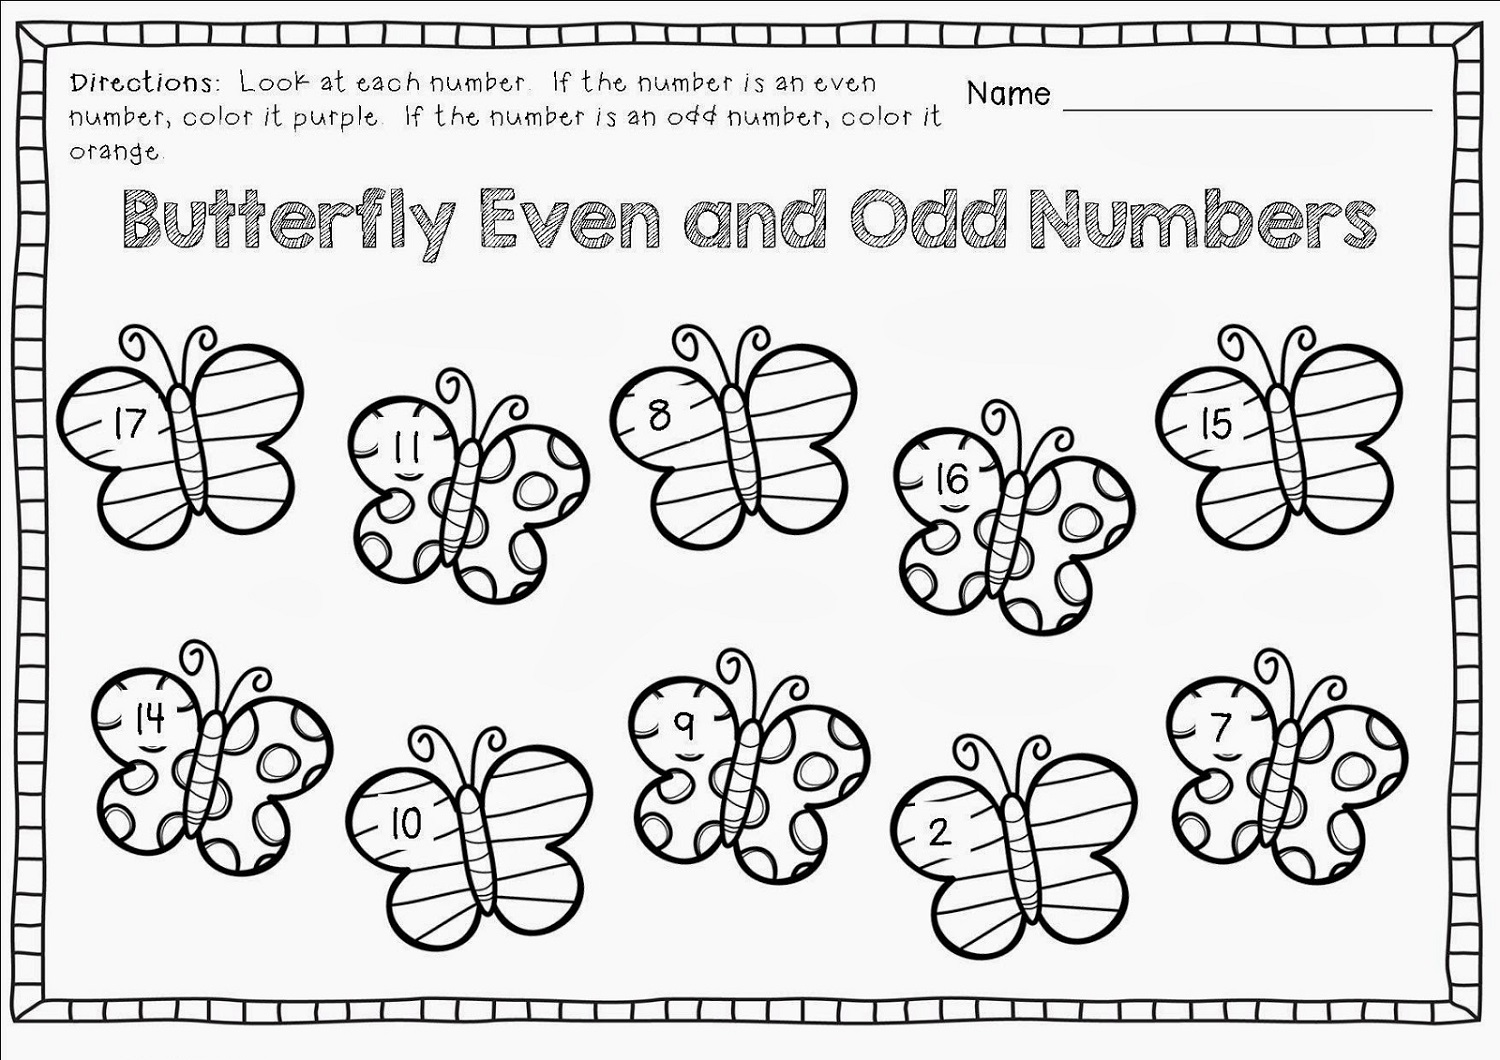 Worksheets Odd And Even Worksheets odd and even numbers lessons tes teach free worksheets activity shelter